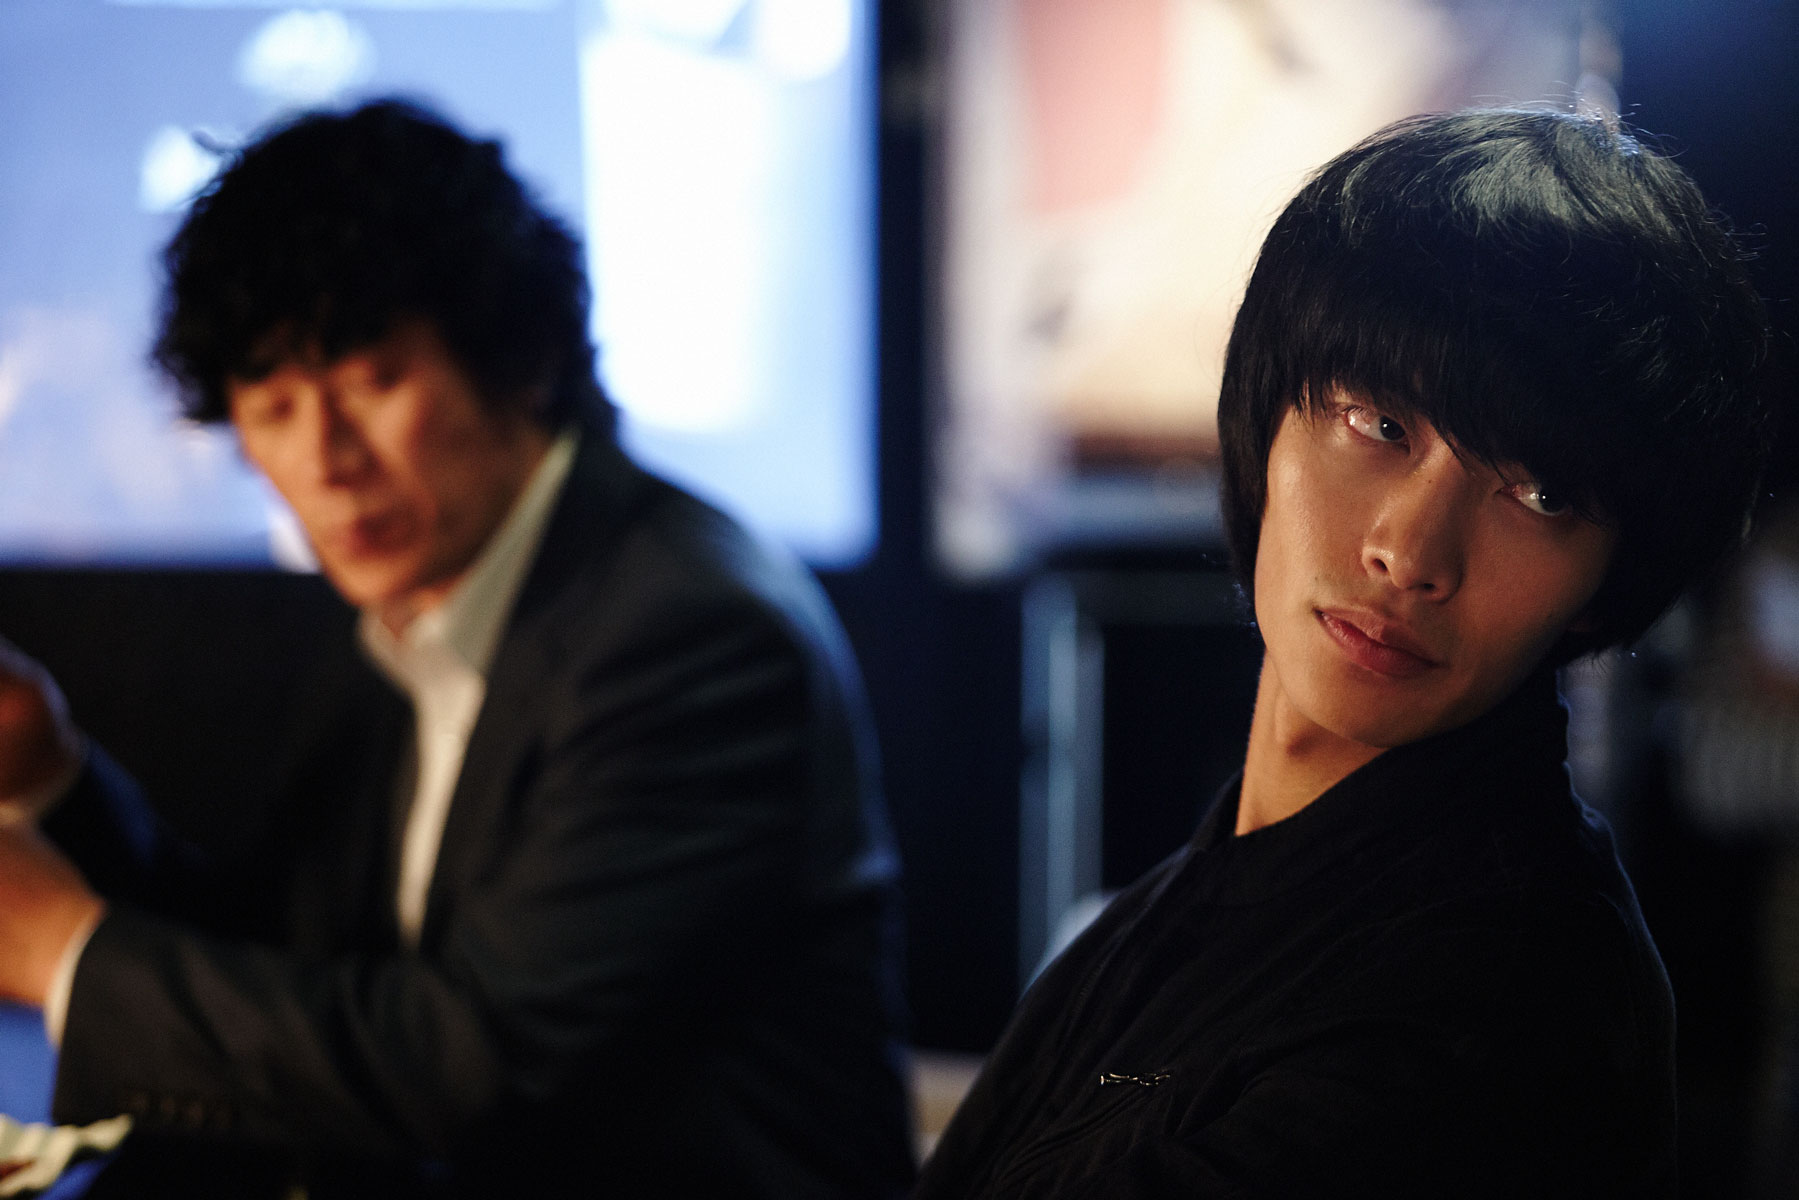 Lee Min Ki and Kim Roi Ha as the two brothers Tae Soo and Ik Sang.